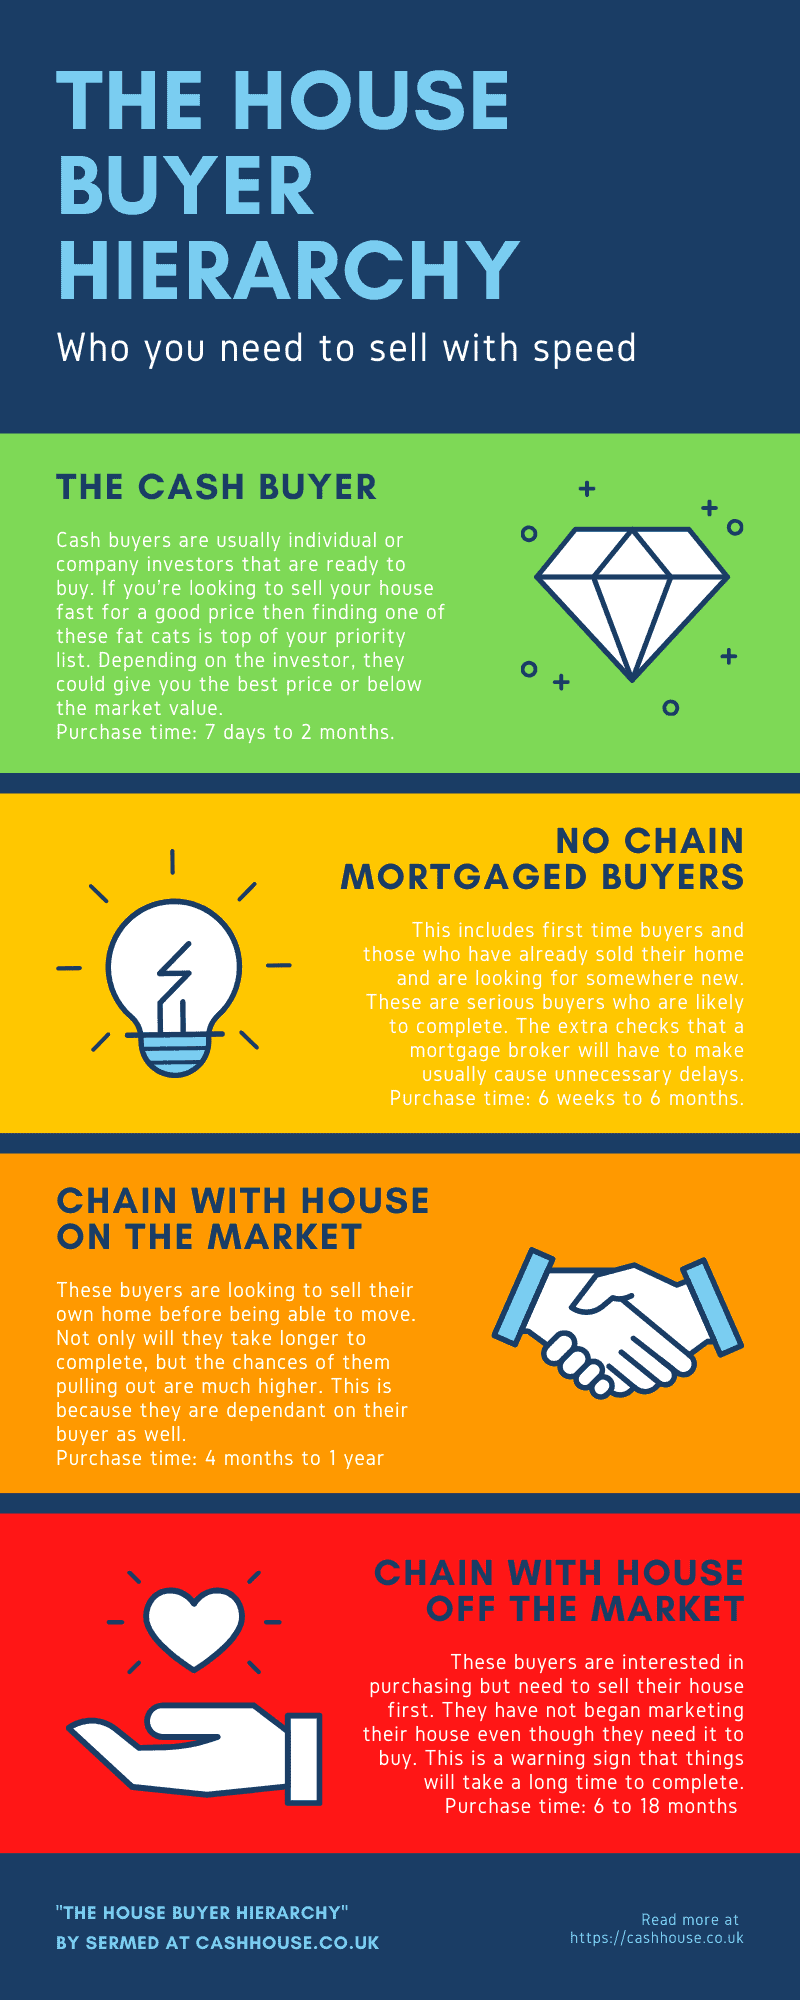 How to Sell My House Quickly For A Good Price Infographic